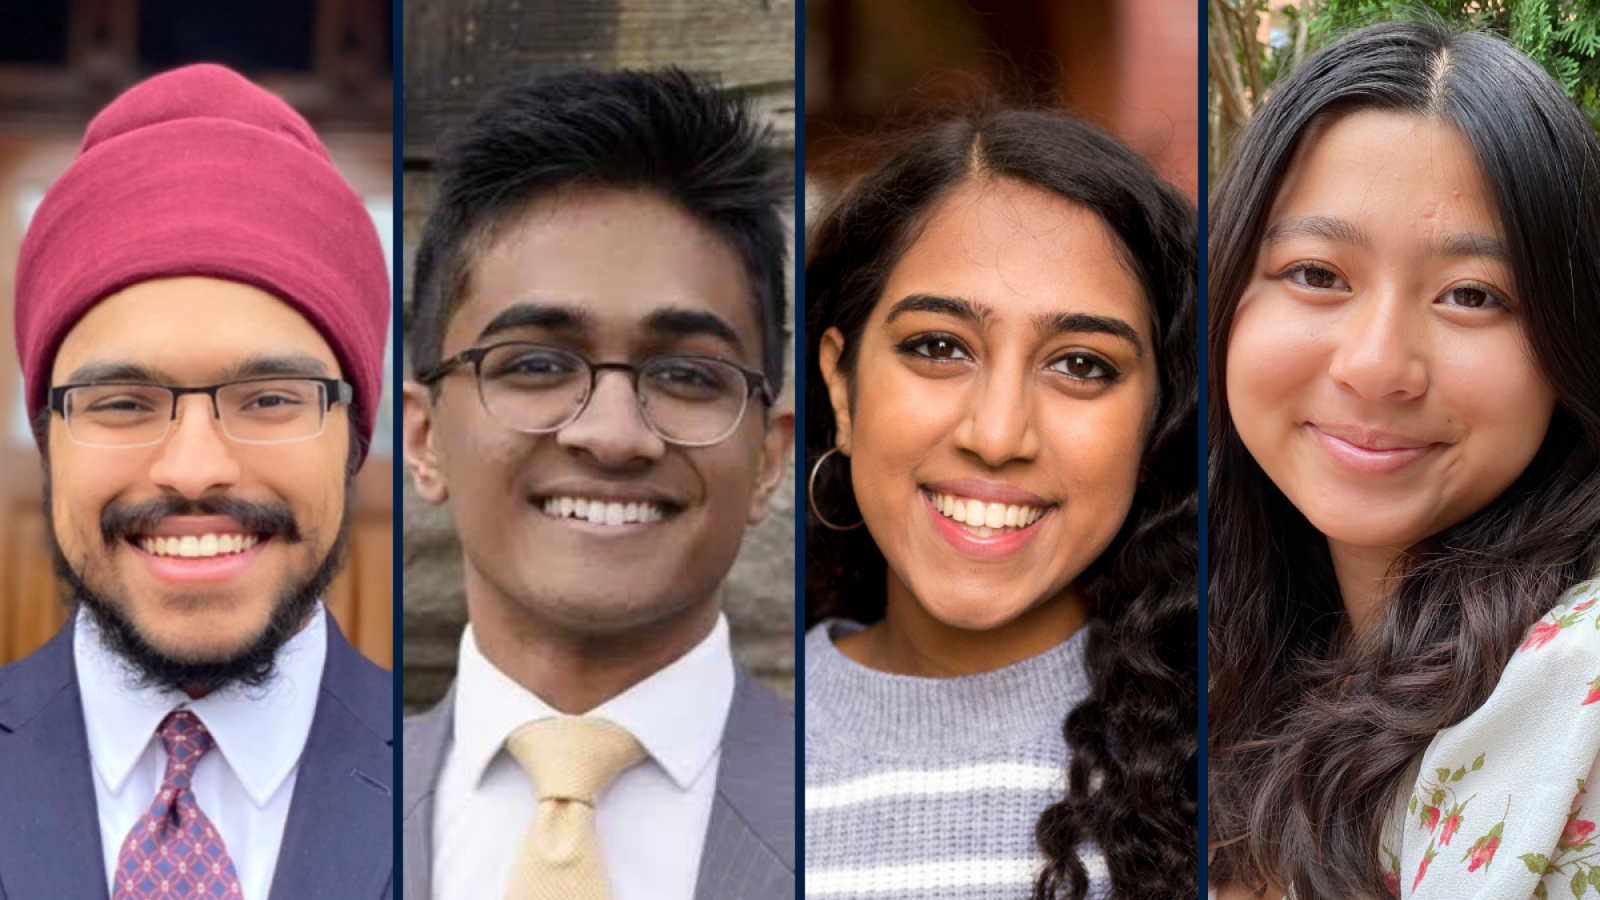 Four Hoyas pictured from the 2021 cohort of the Paul F. Pelosi Scholars Initiative.